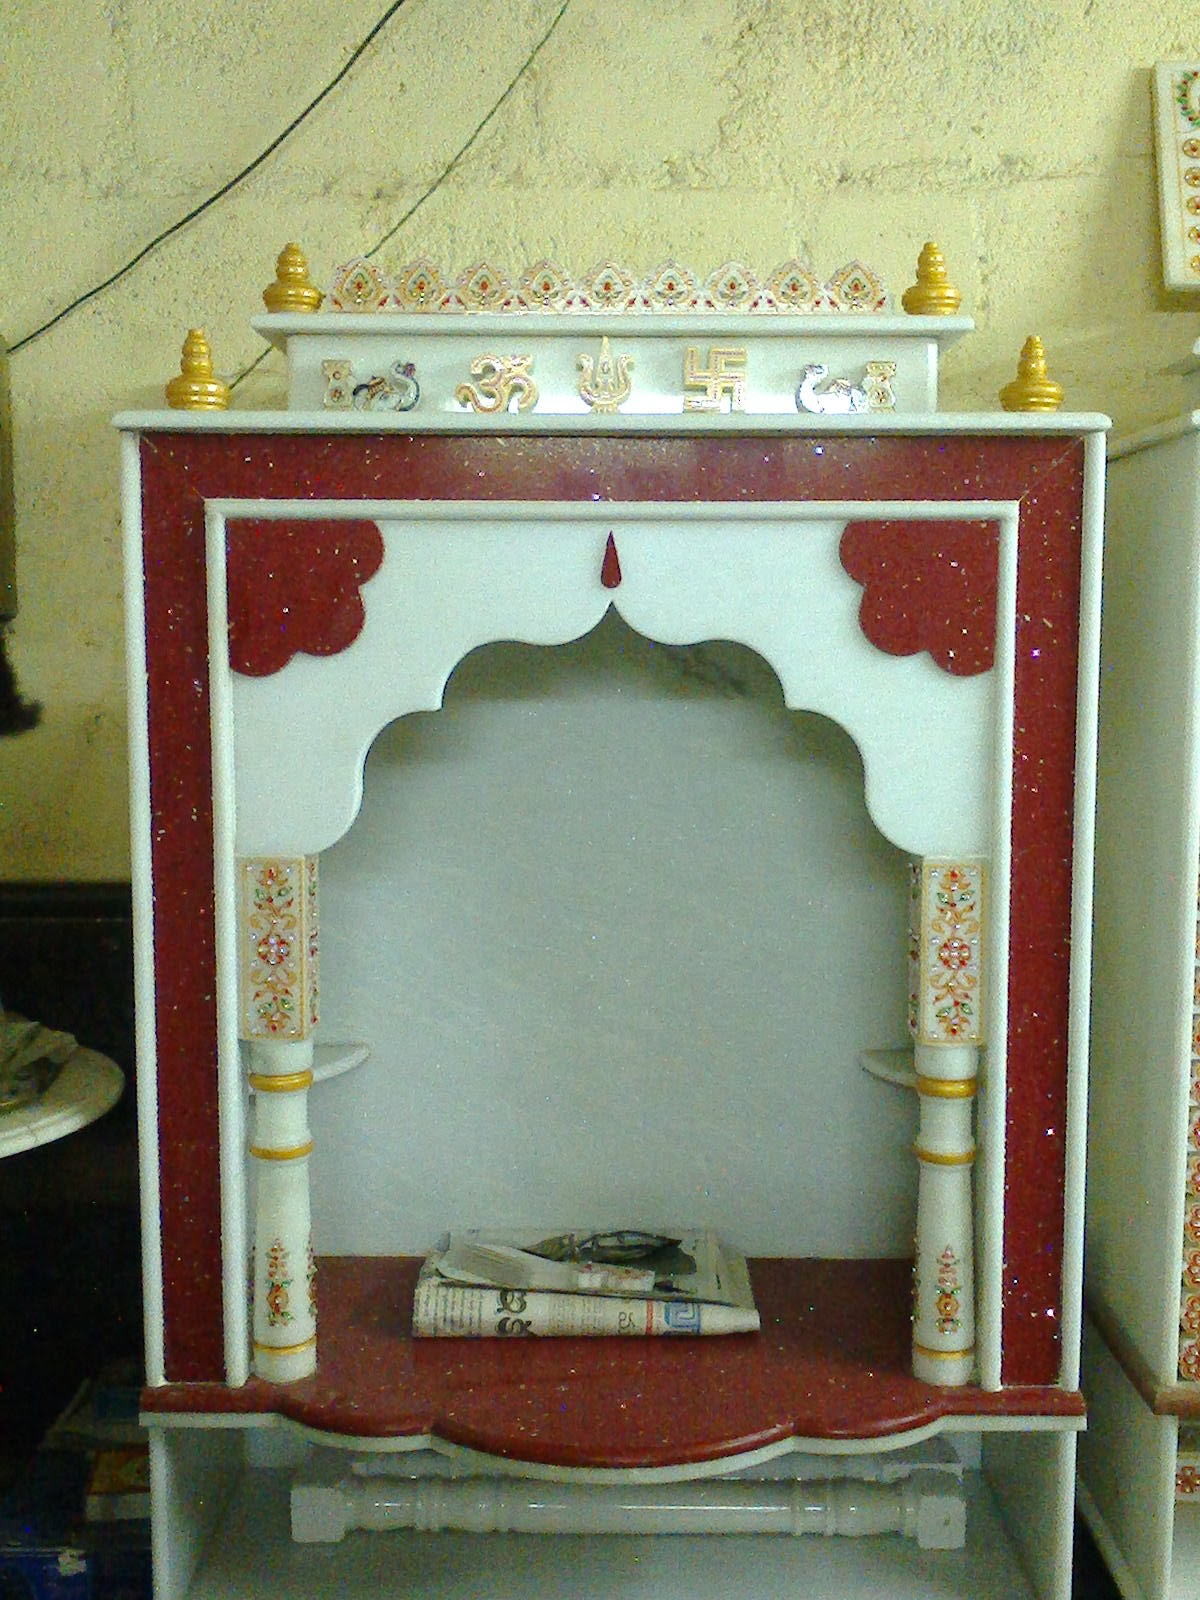 Hari om marbles and granites latest design pooja mandir 2013 for Home mandir designs marble